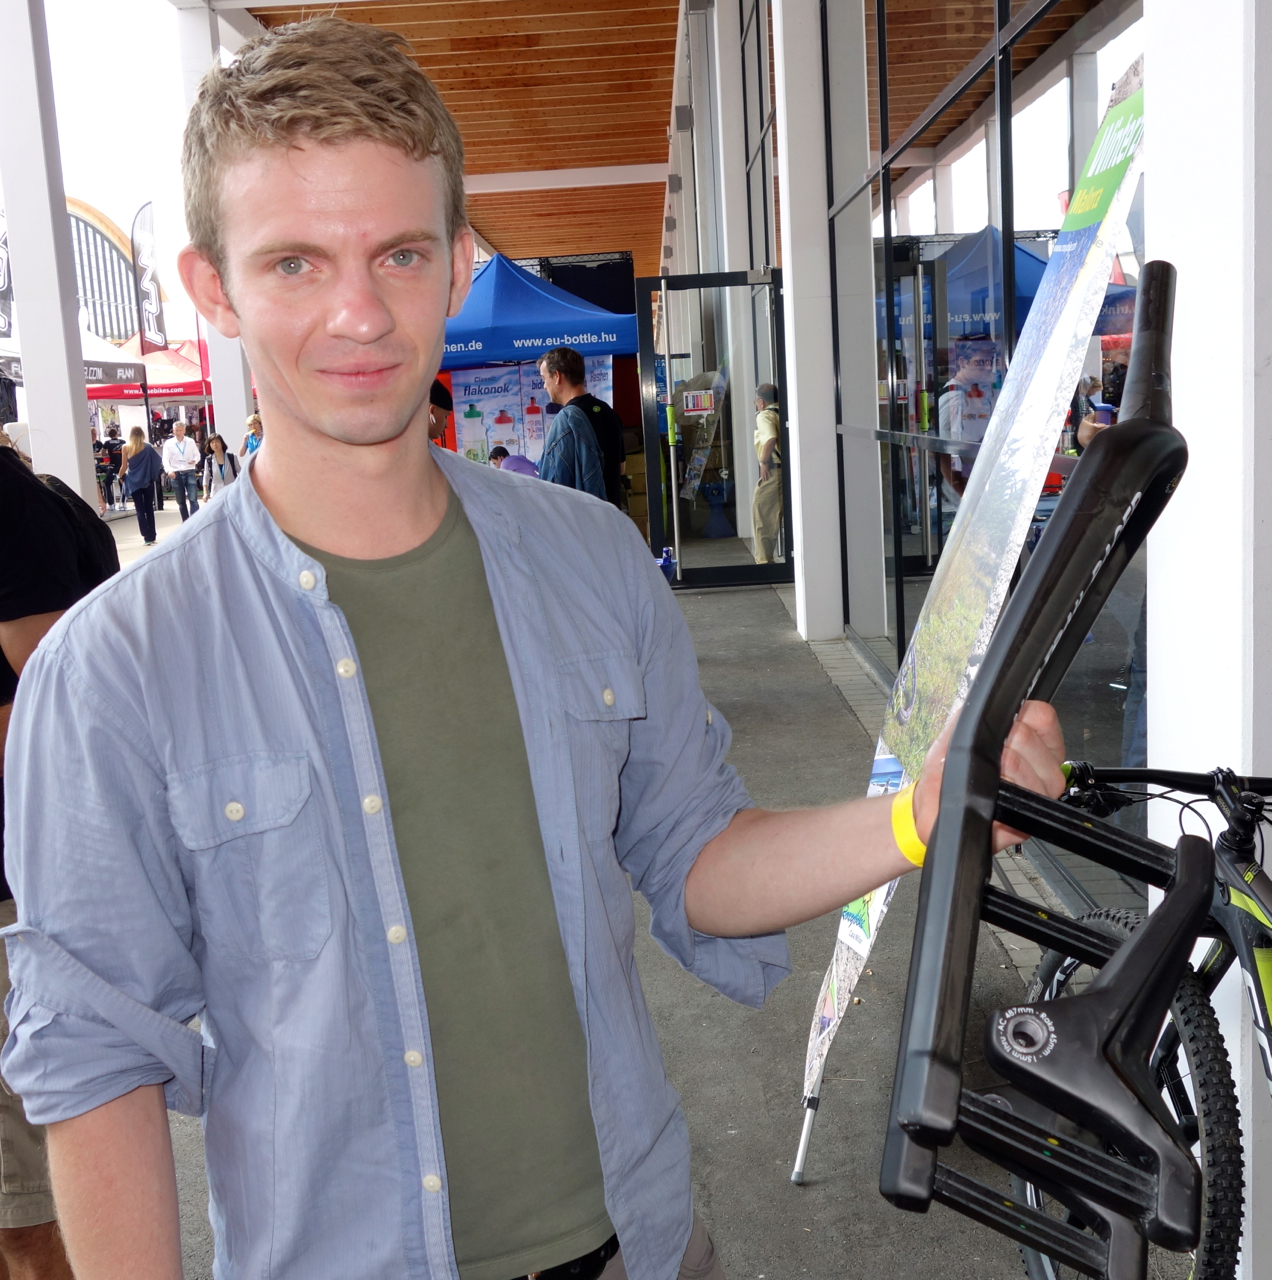 Co-founder and CEO Benedikt Skulason was inspired by high-tech athletic prosthetics